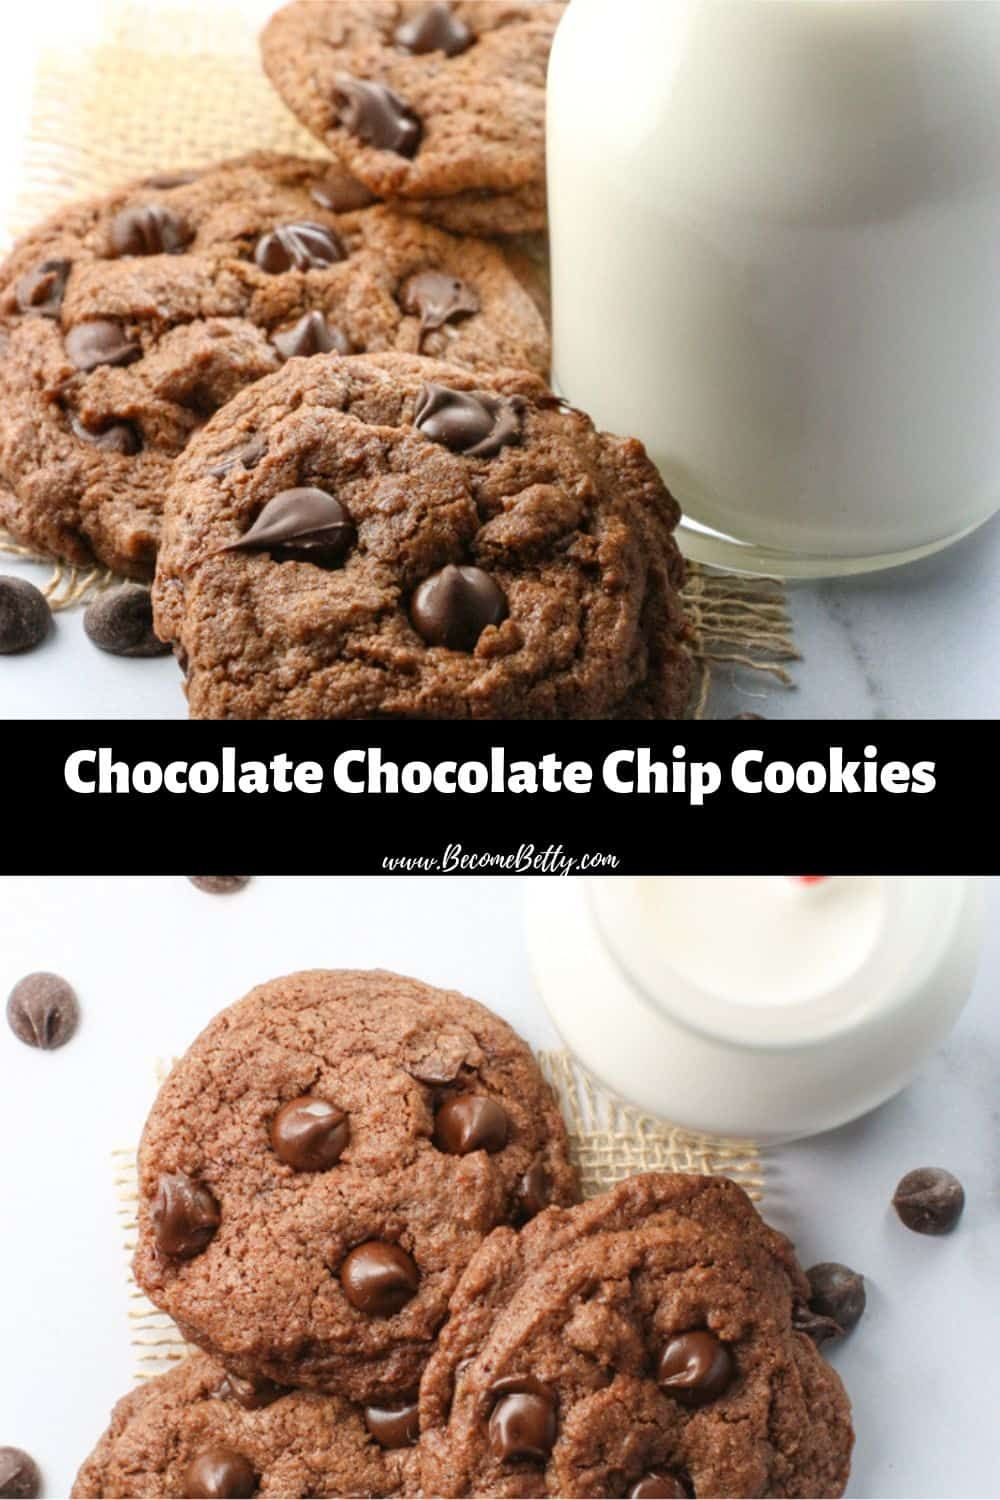 Intensely Chocolate Chocolate Chip Cookies Perfect For National Chocolate Chip Cookie Day And Even B Chocolate Chip Cookies Chip Cookies Soft Chocolate Cookie